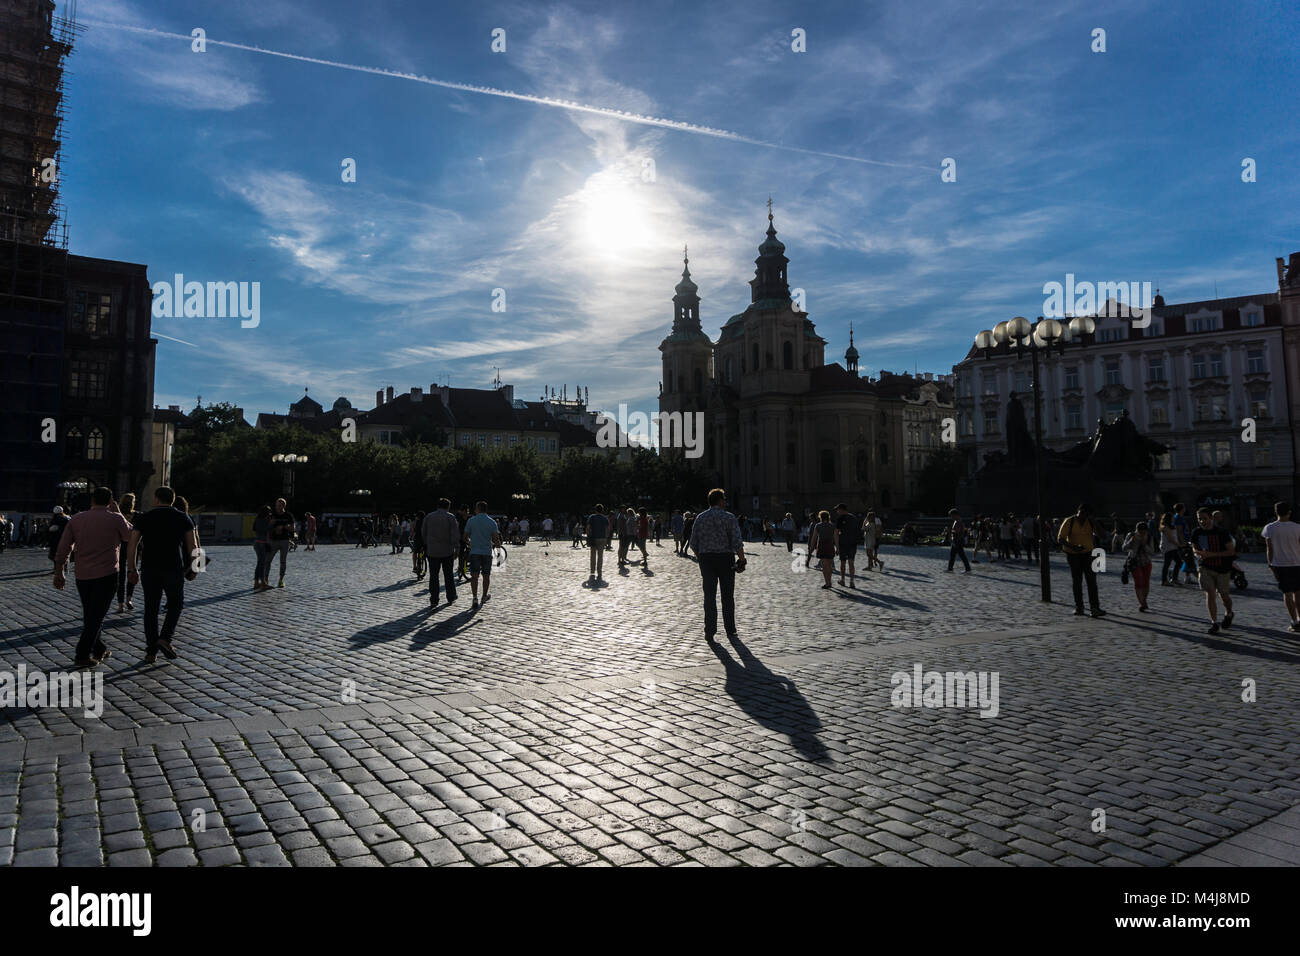 Tourists walking in the streets of Prague - Stock Image